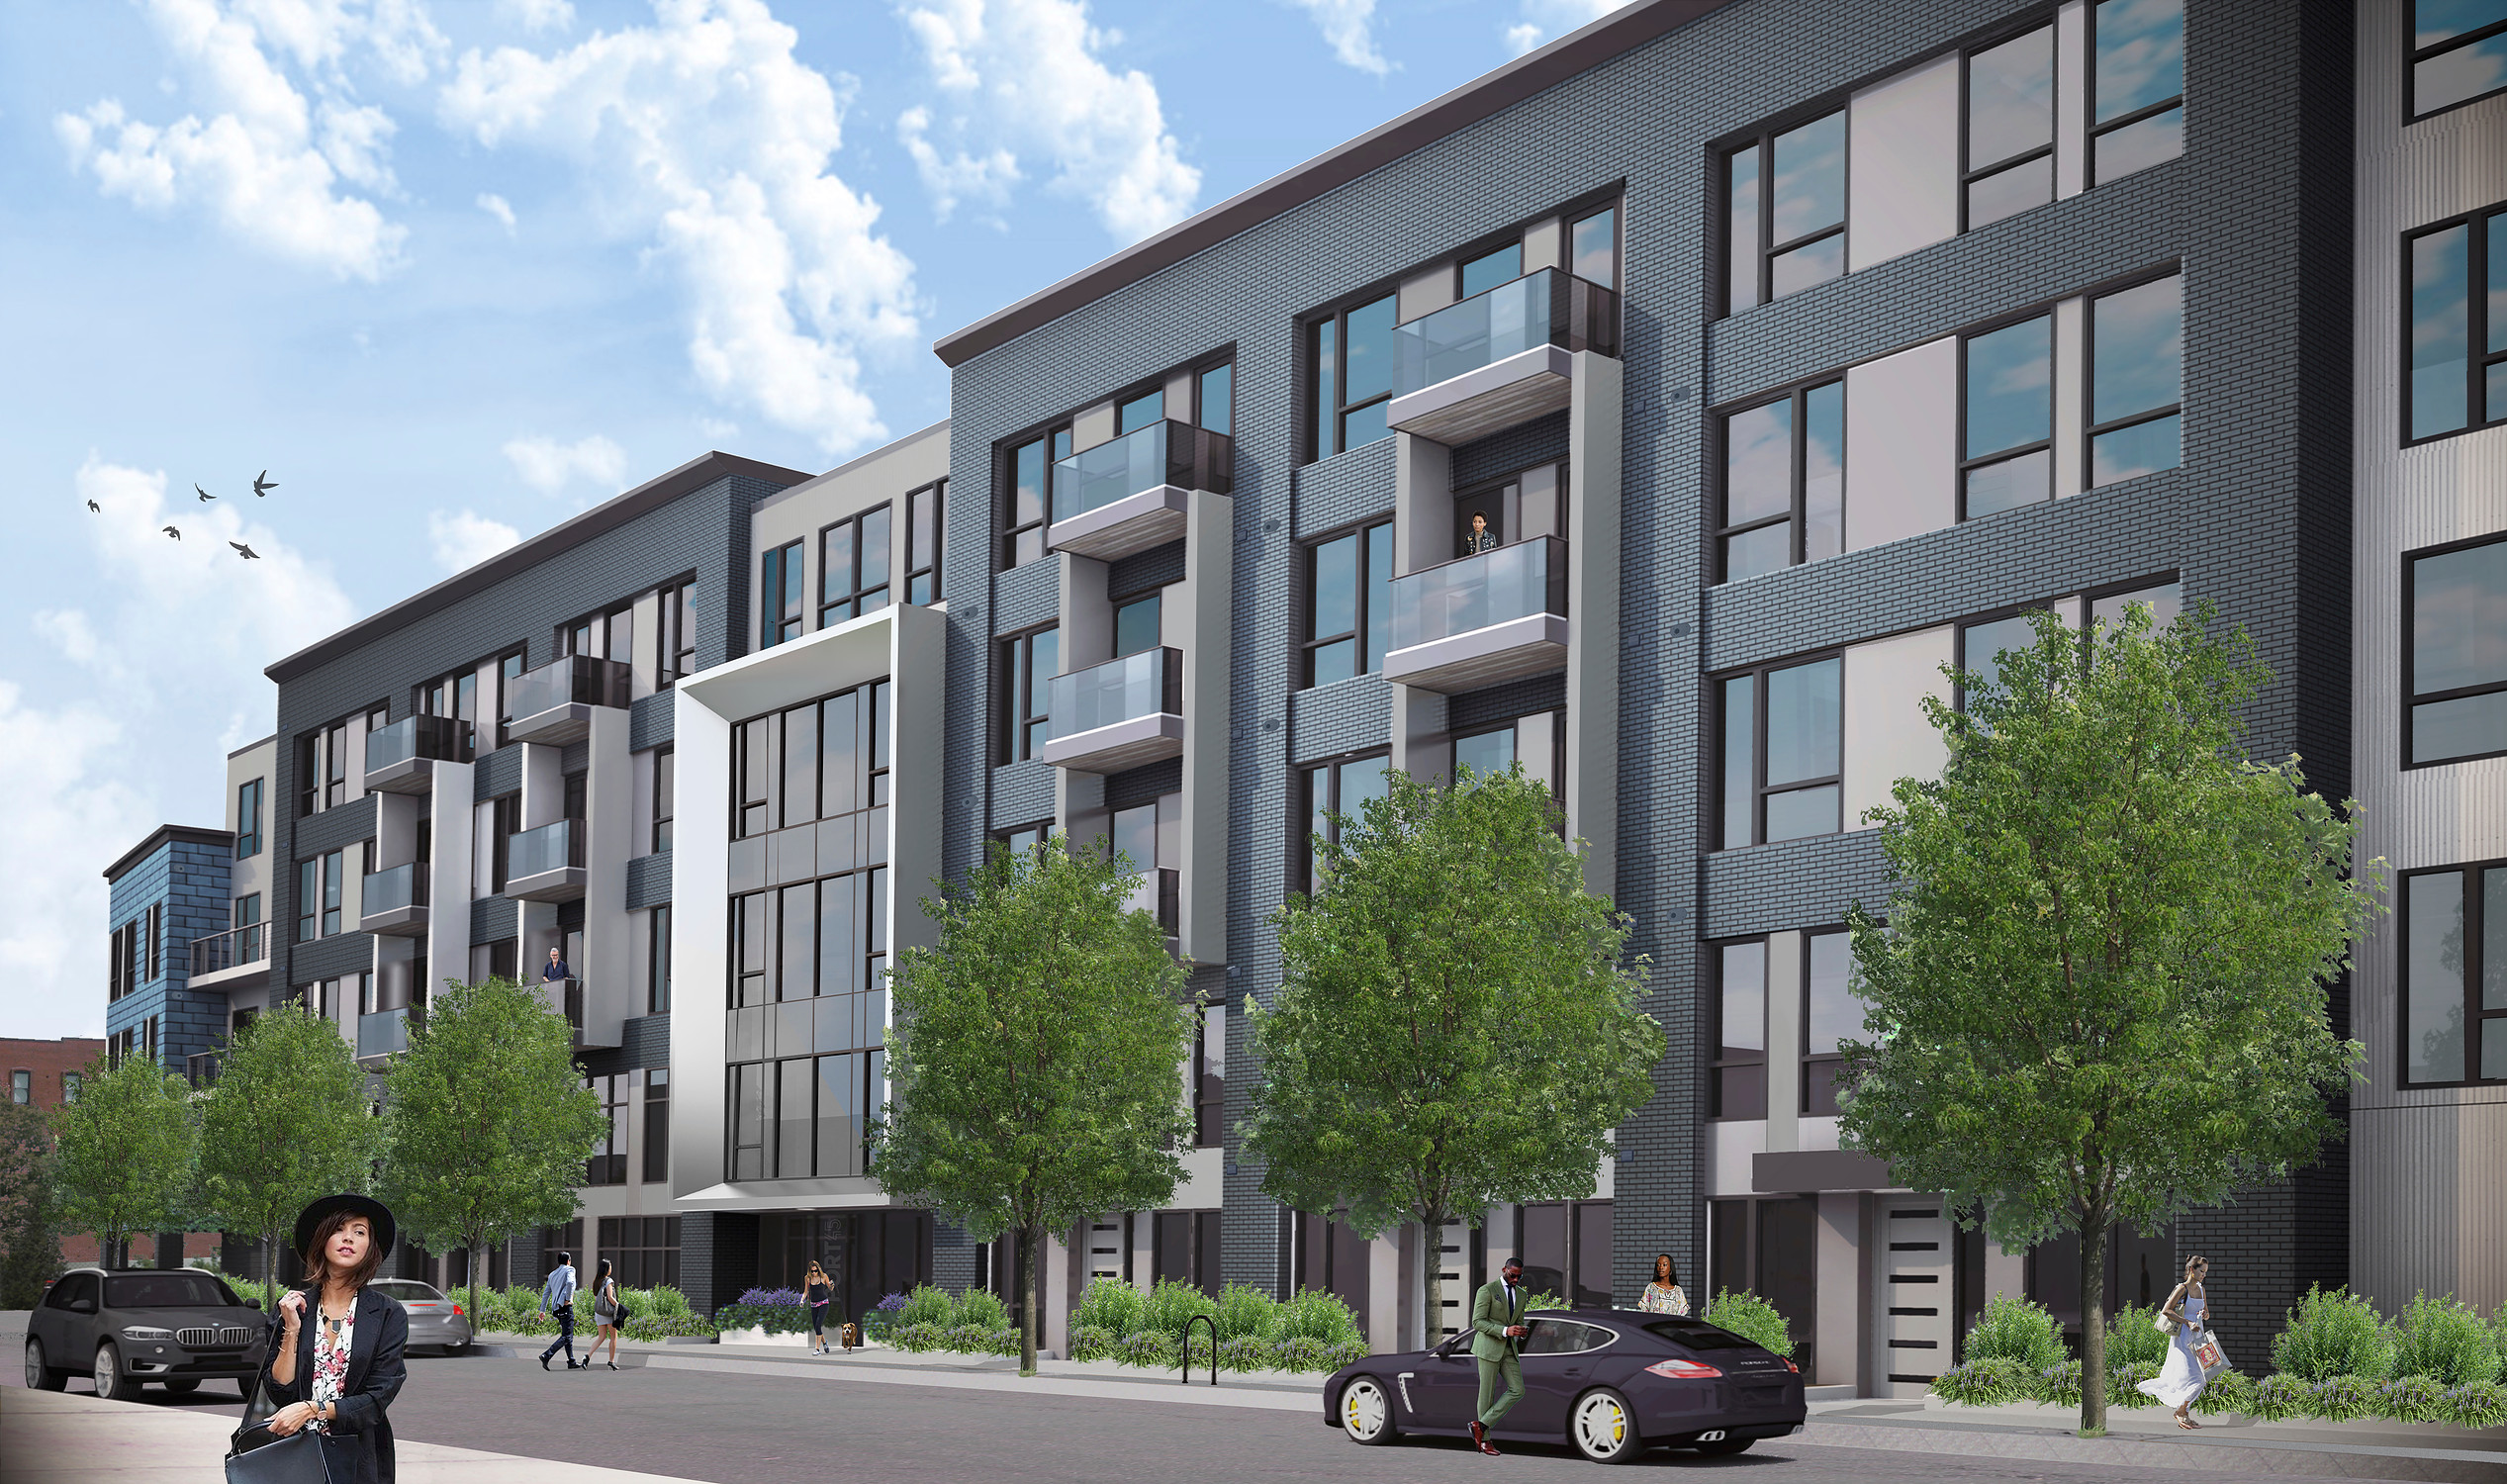 Port 45 west third street condominiums for sale residential development new construction south boston southie